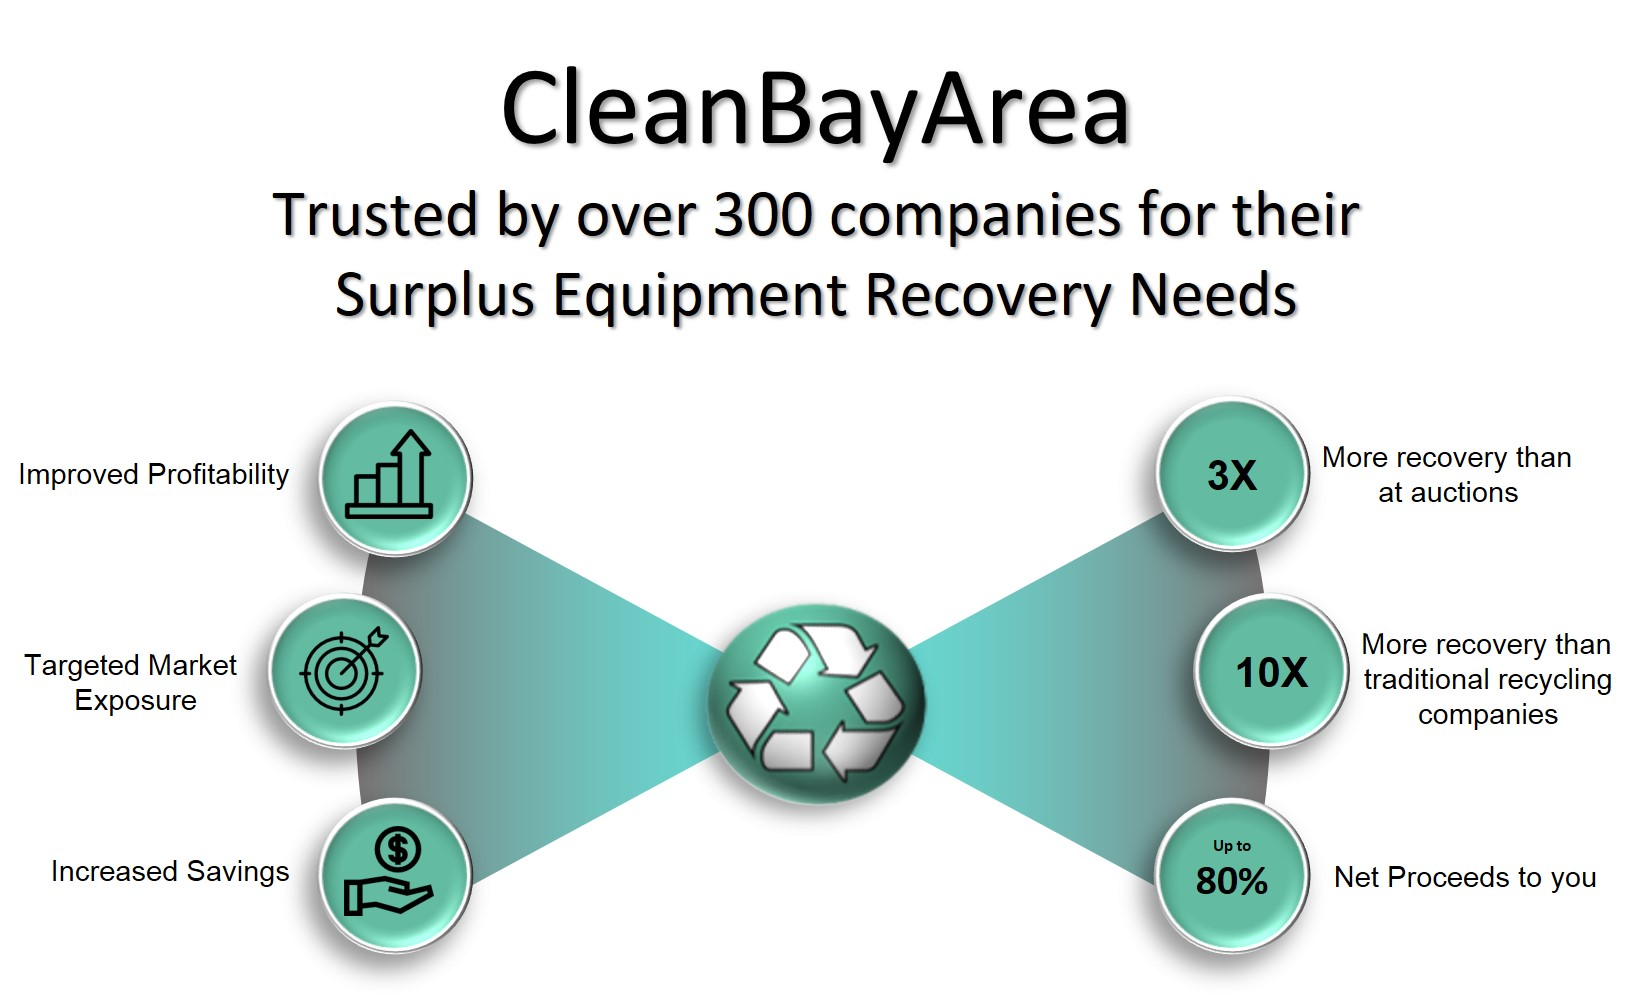 CleanBayArea Trusted Surplus Equipment Recovery Corporation